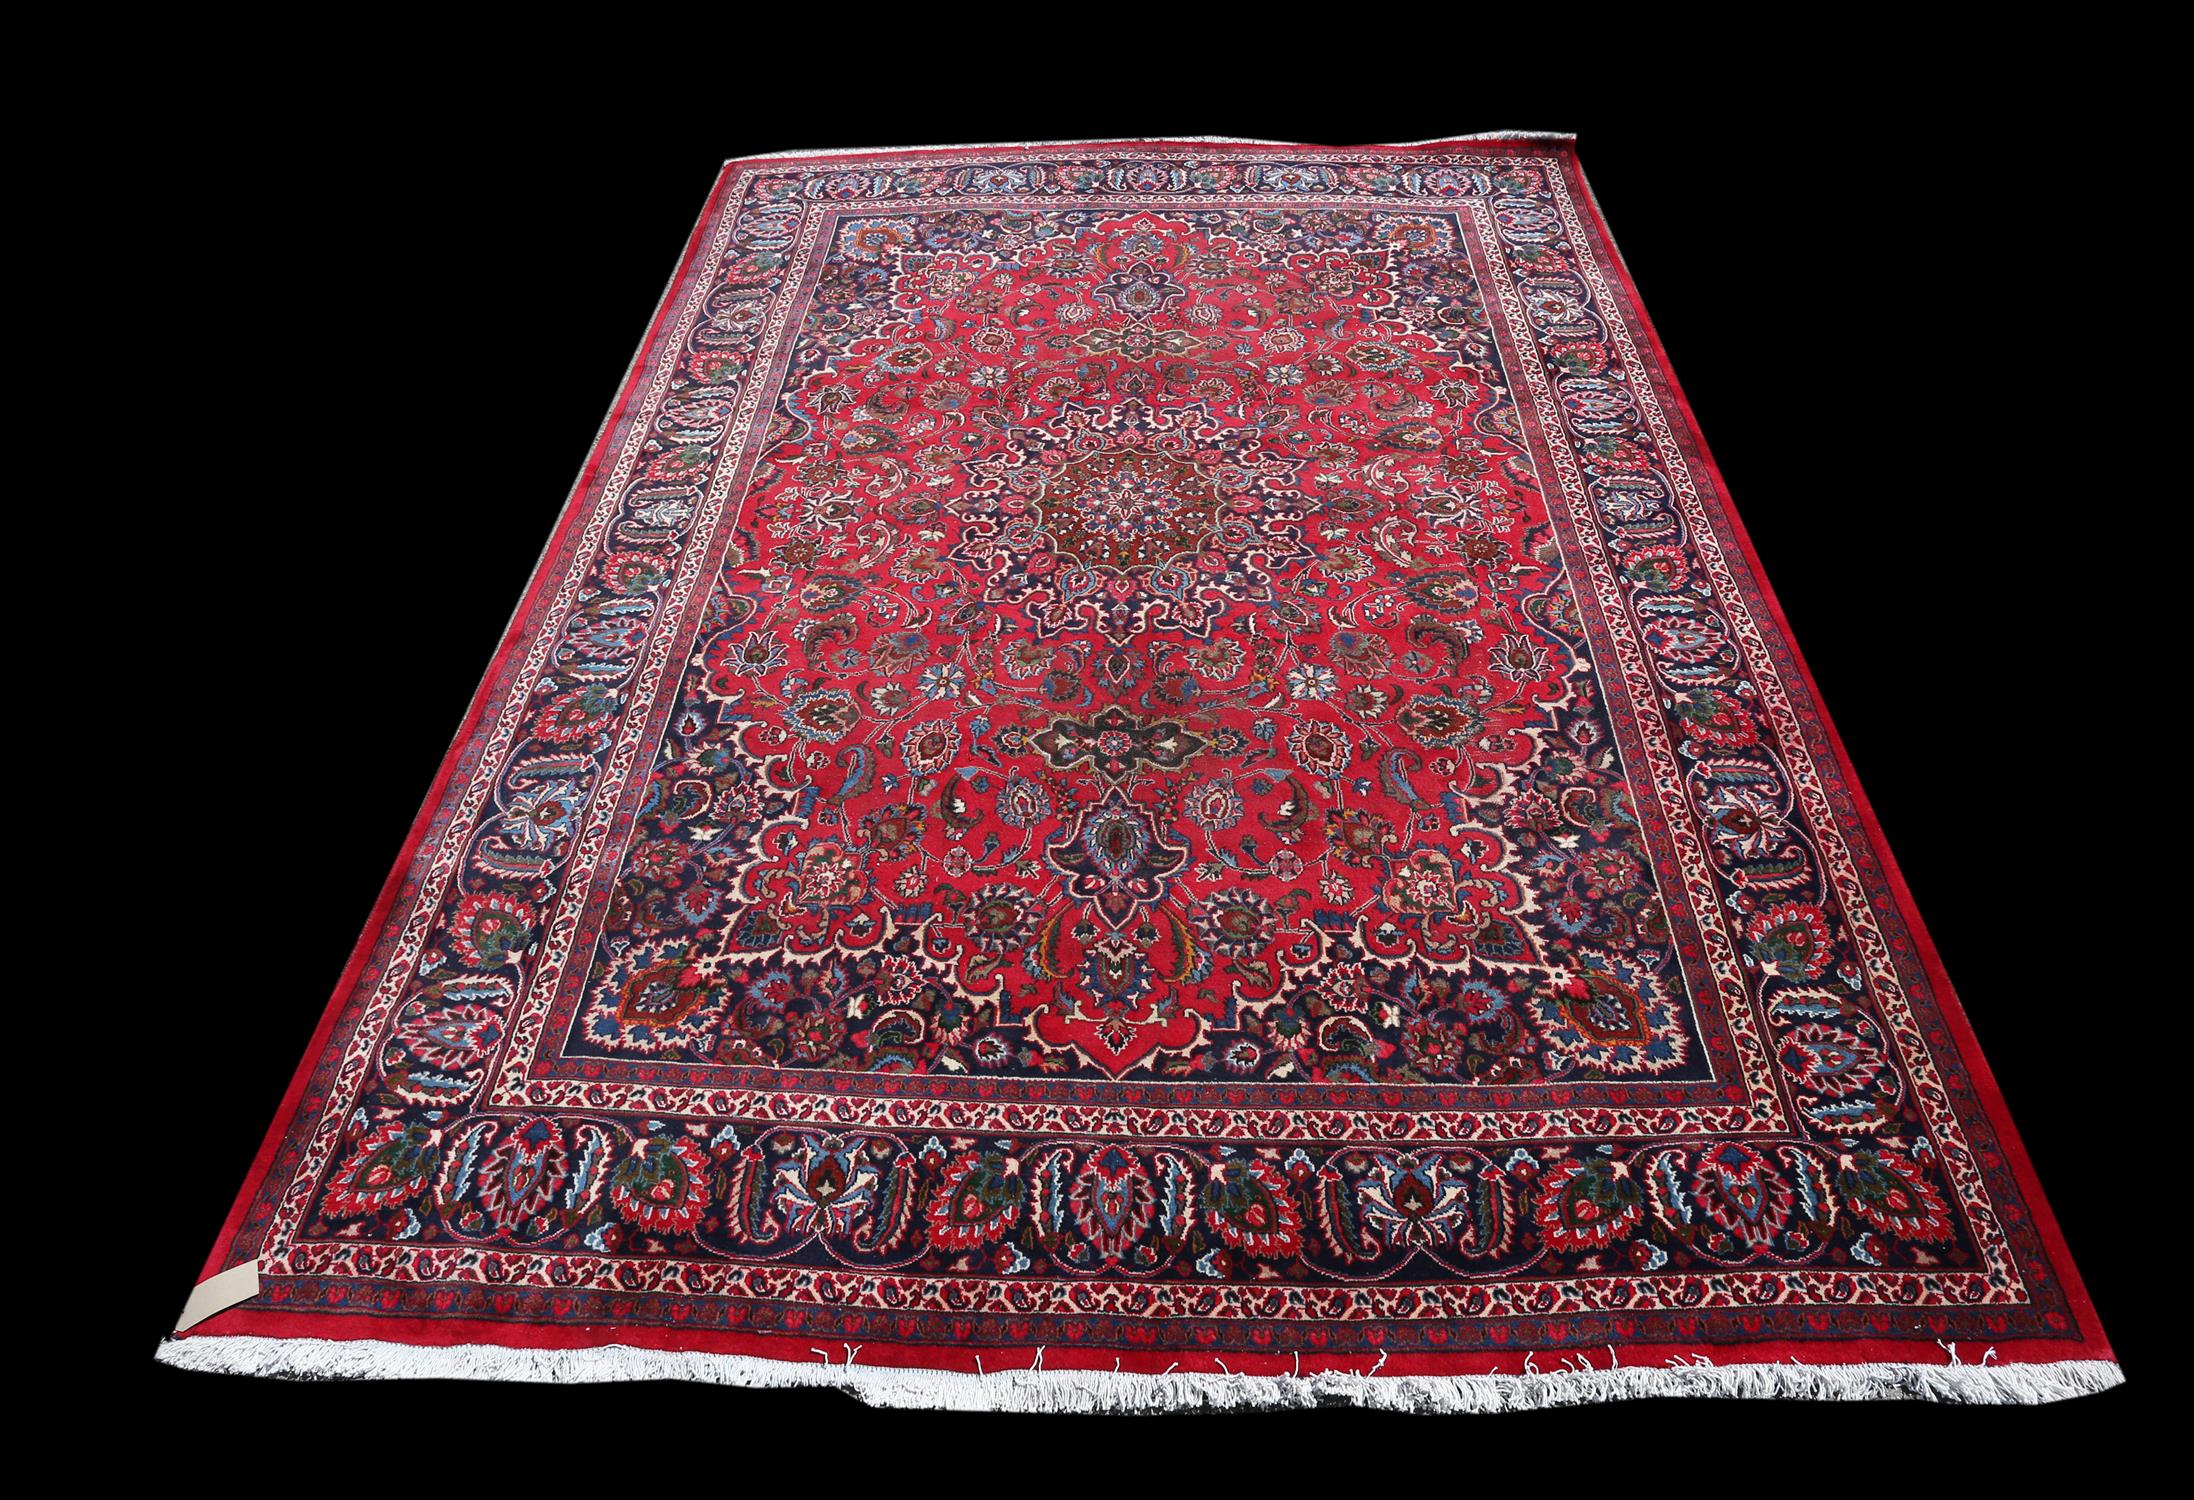 Large Persian full pile Mashad carpet, with traditional pattern of central floral medallion and